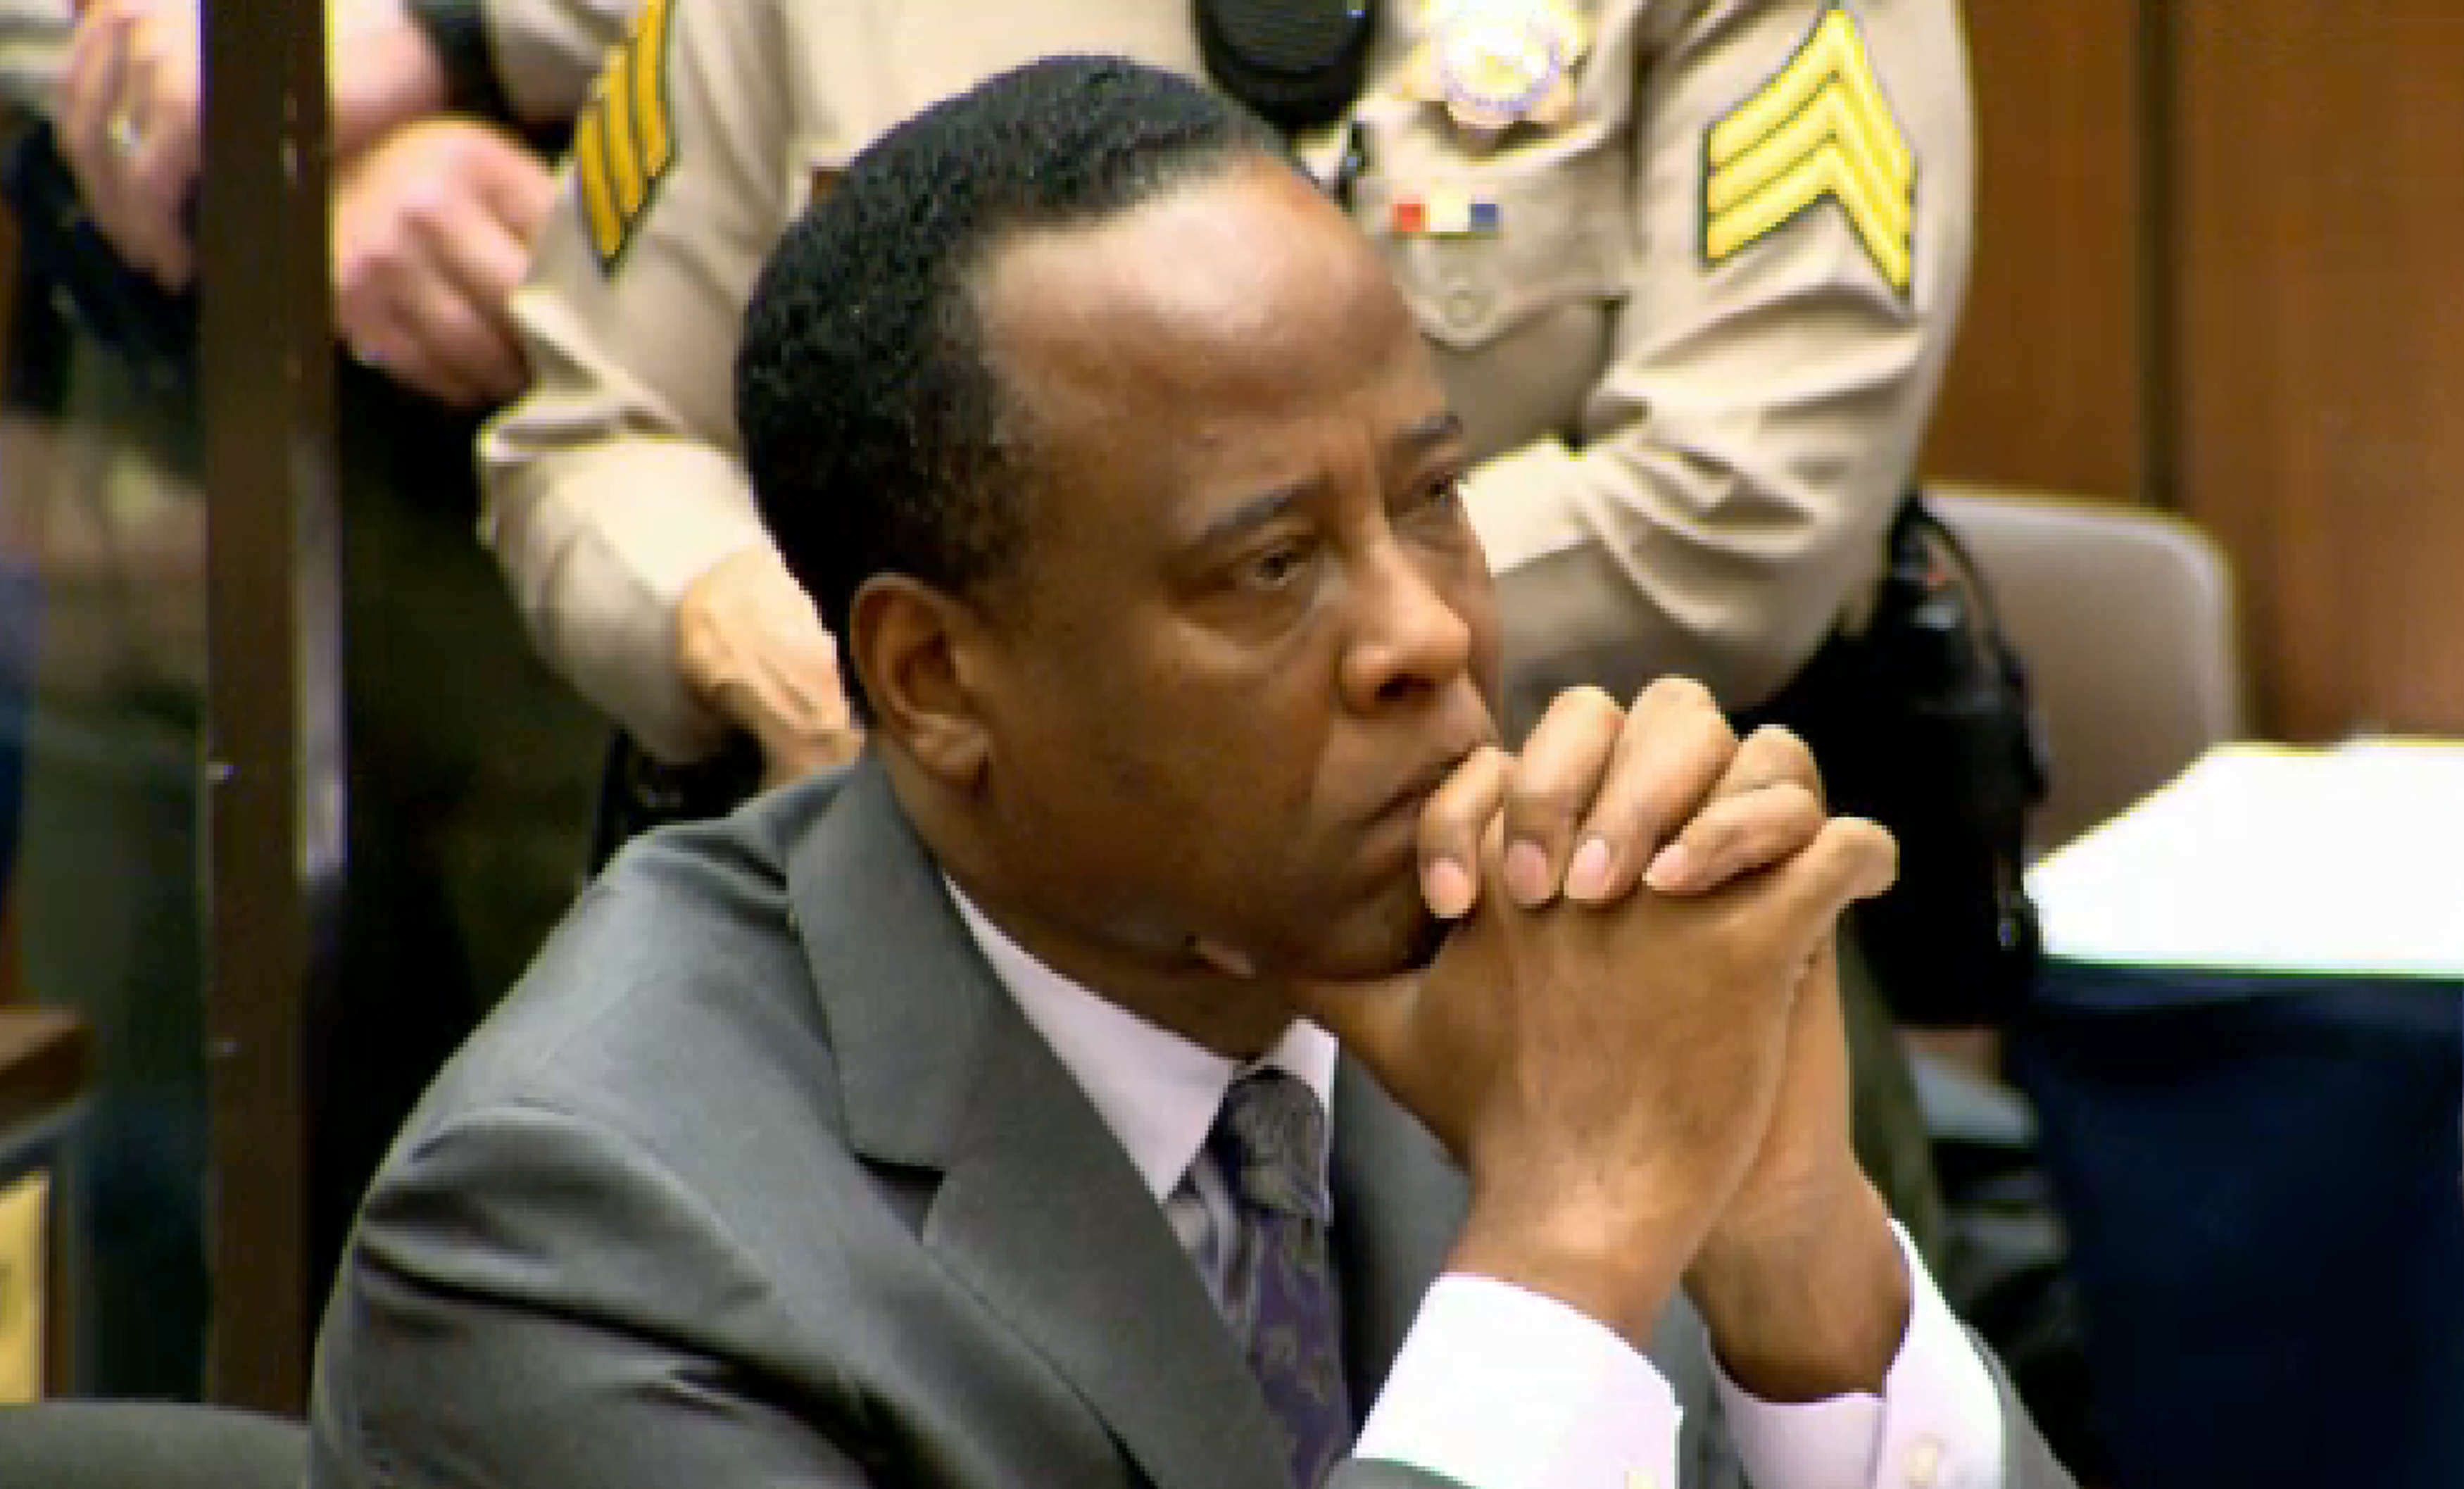 dr conrad murray being sentenced in court